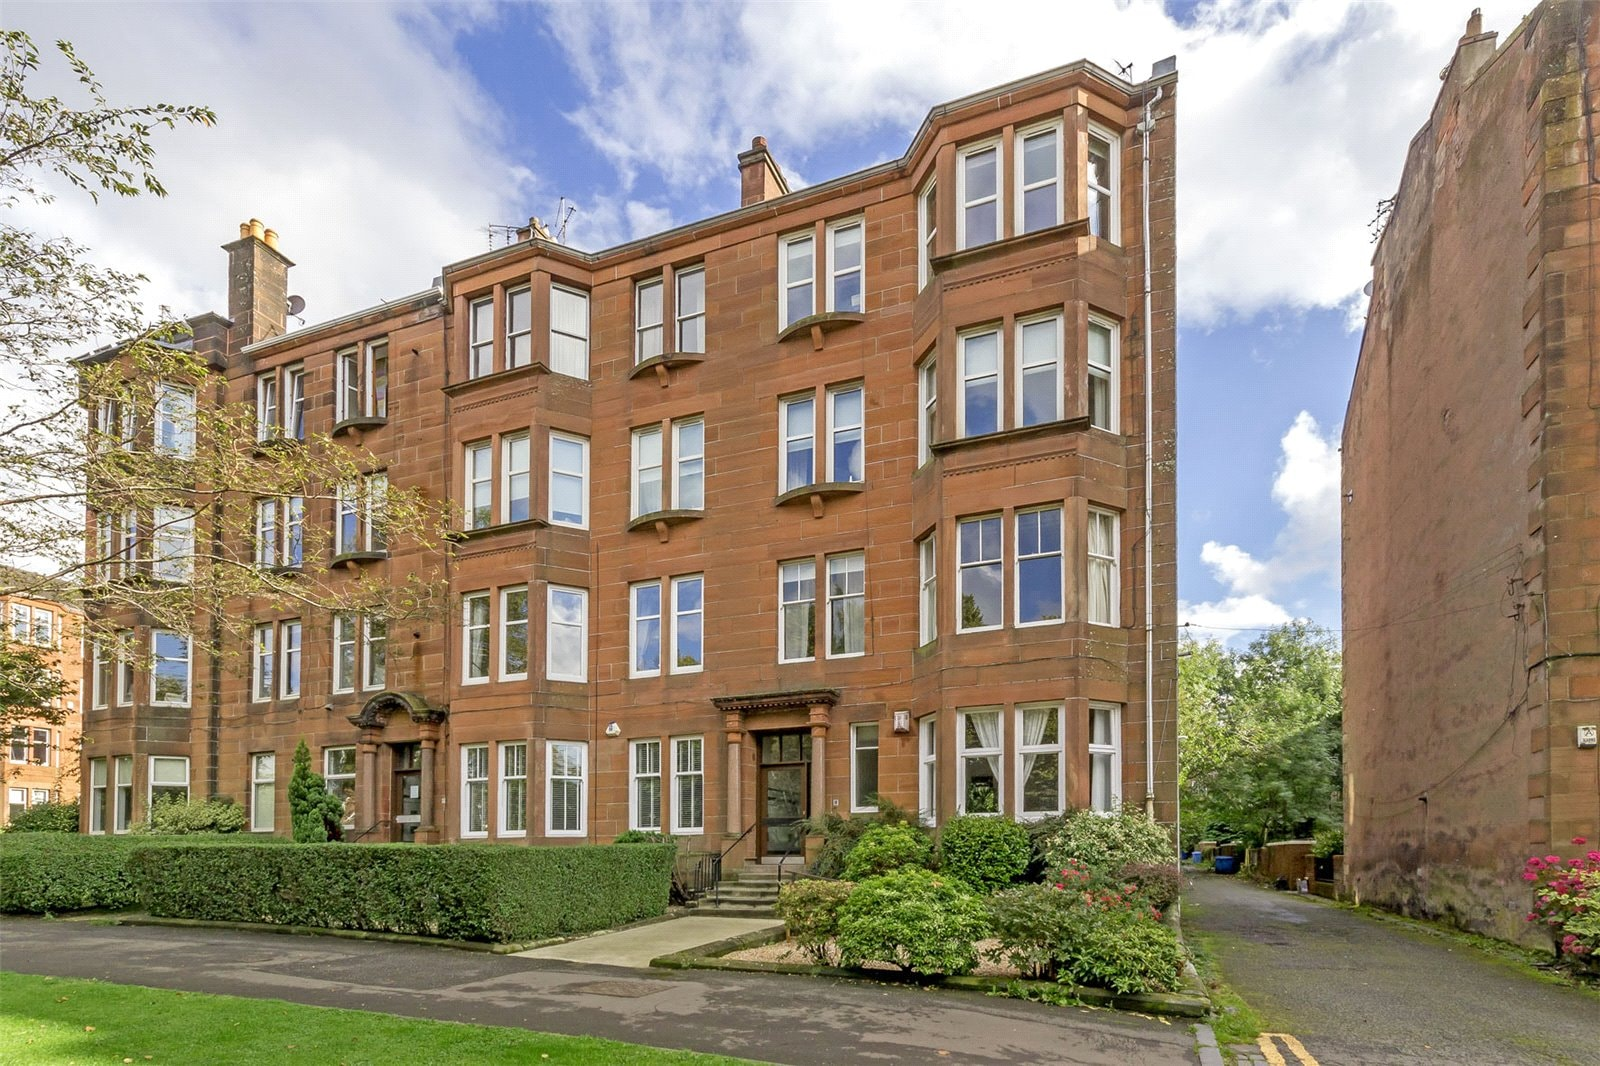 Glasgow Property of the Month: Flat 1/2, 8 Woodcroft Avenue